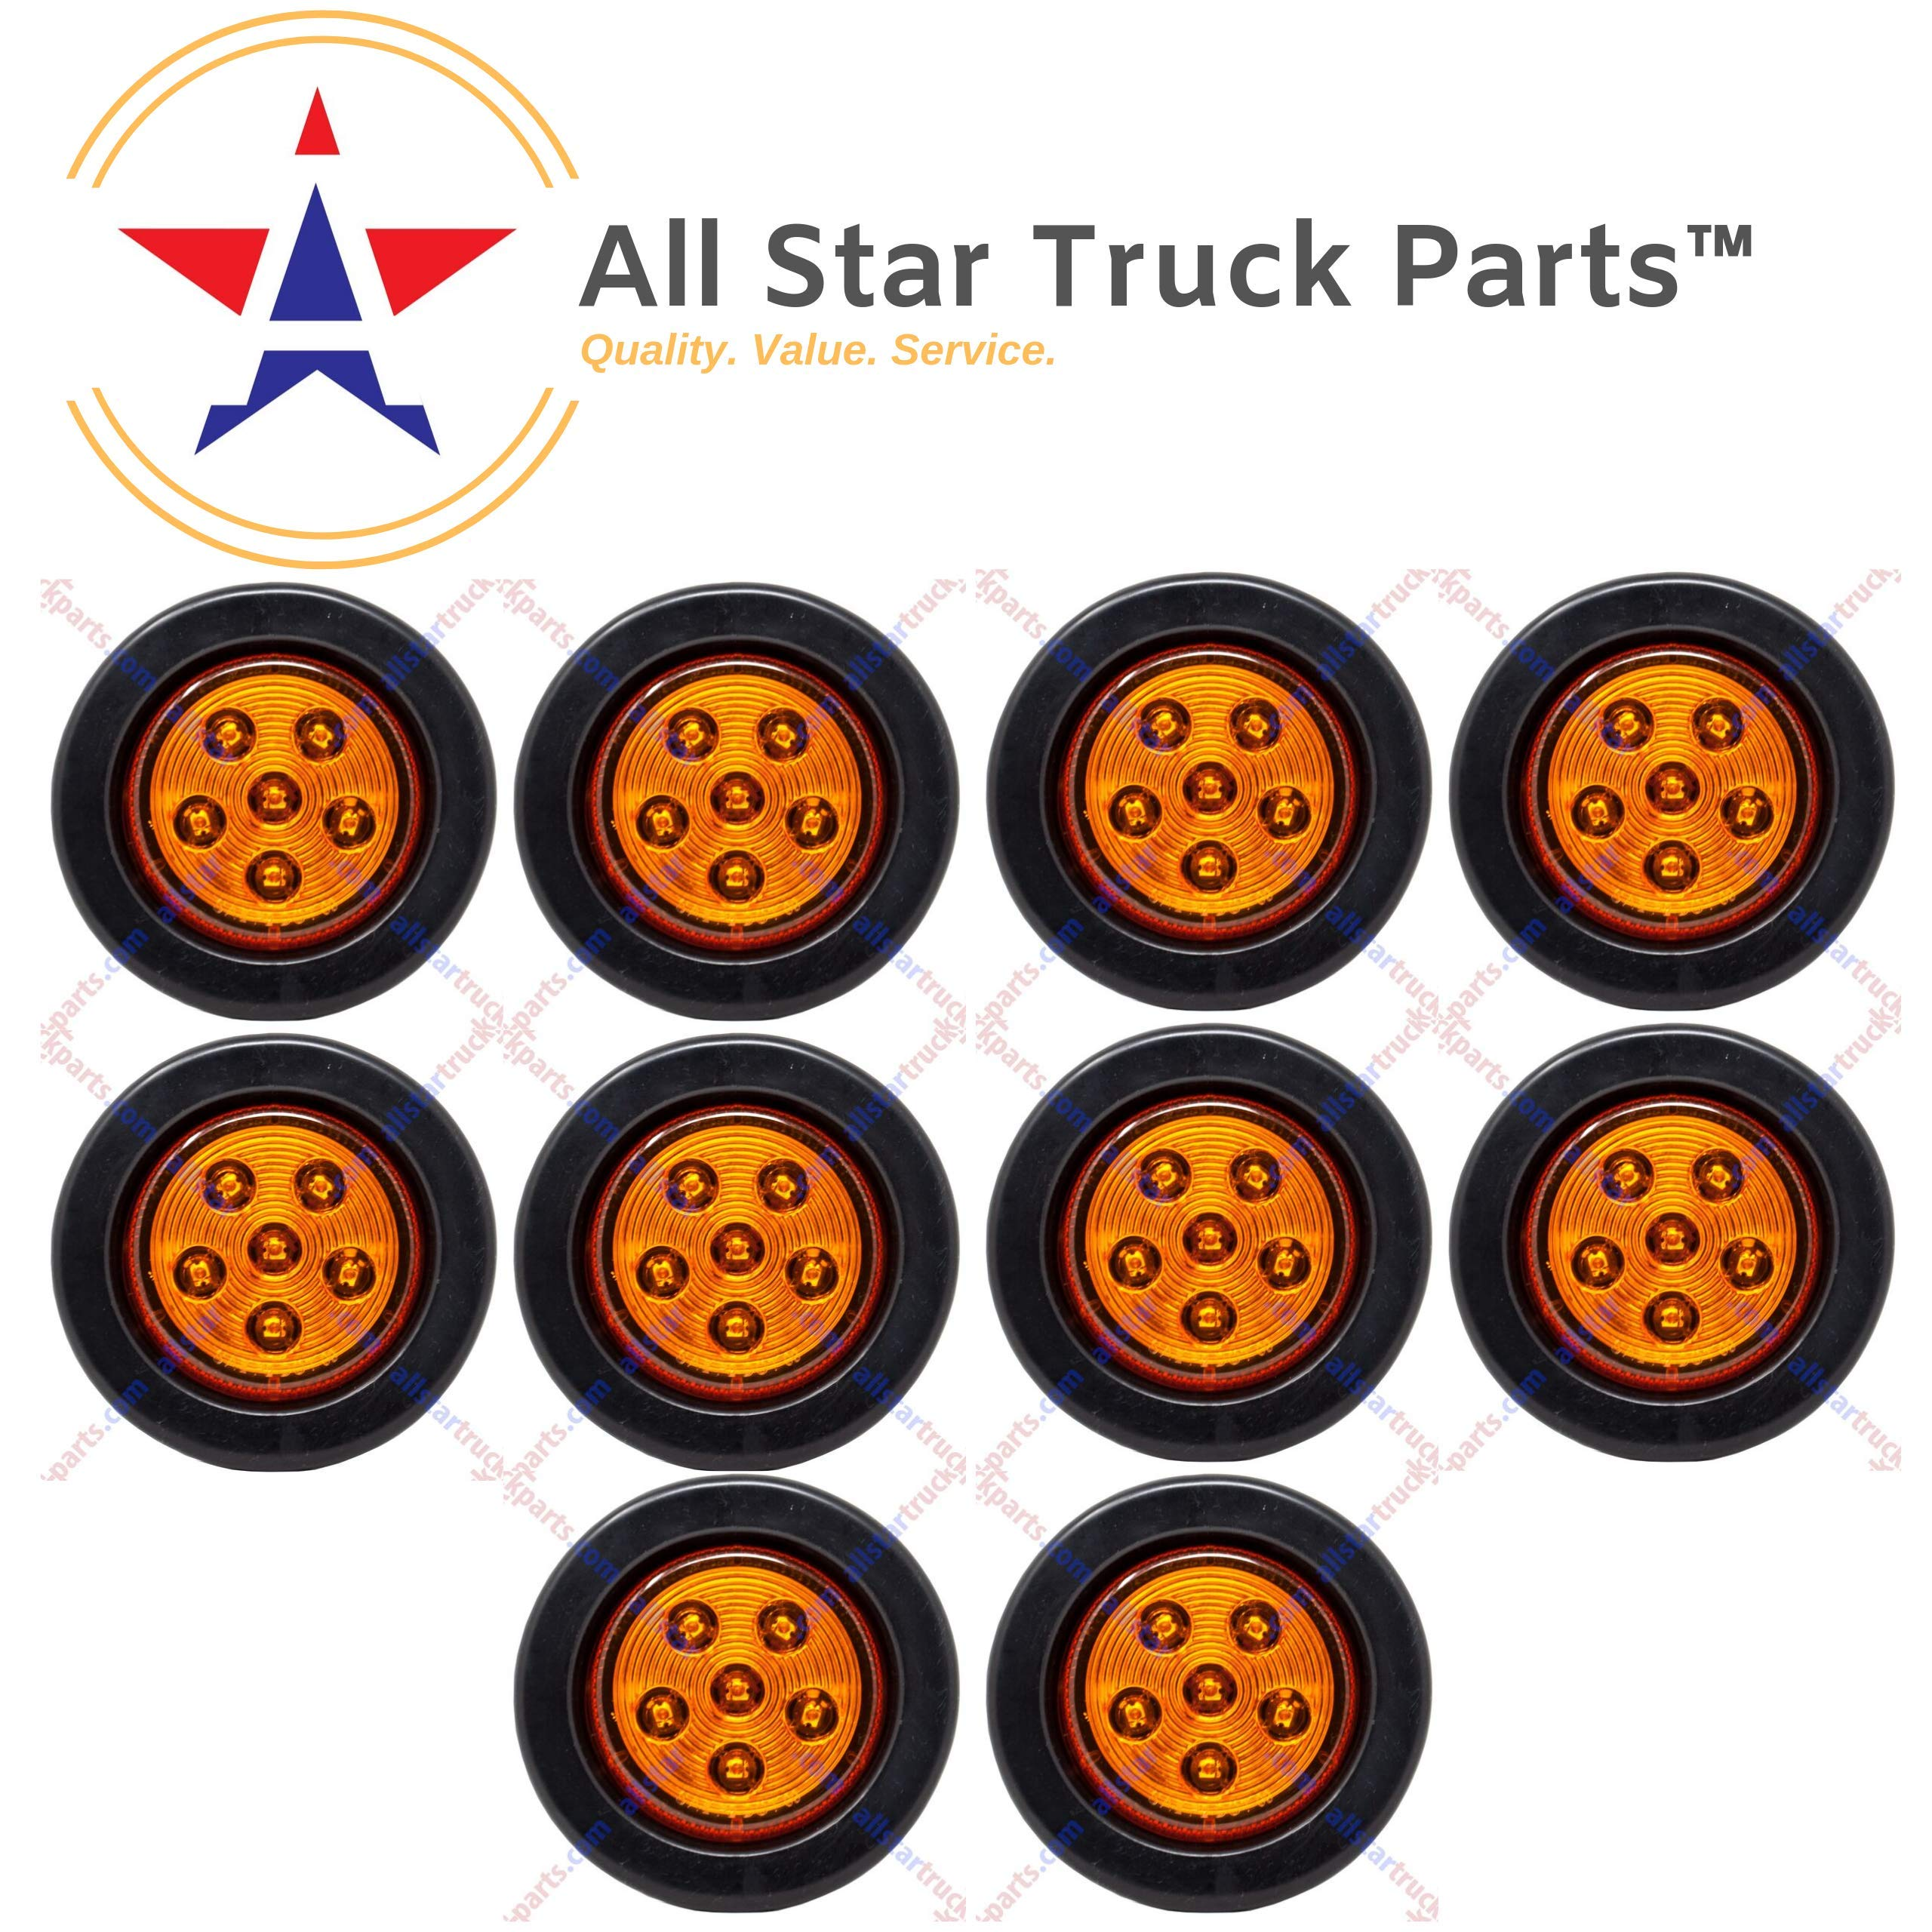 Qty 10-2.5'' Inch Round 6 LED Amber Light Truck Trailer Side Marker Clearance Kit by All Star Truck Parts